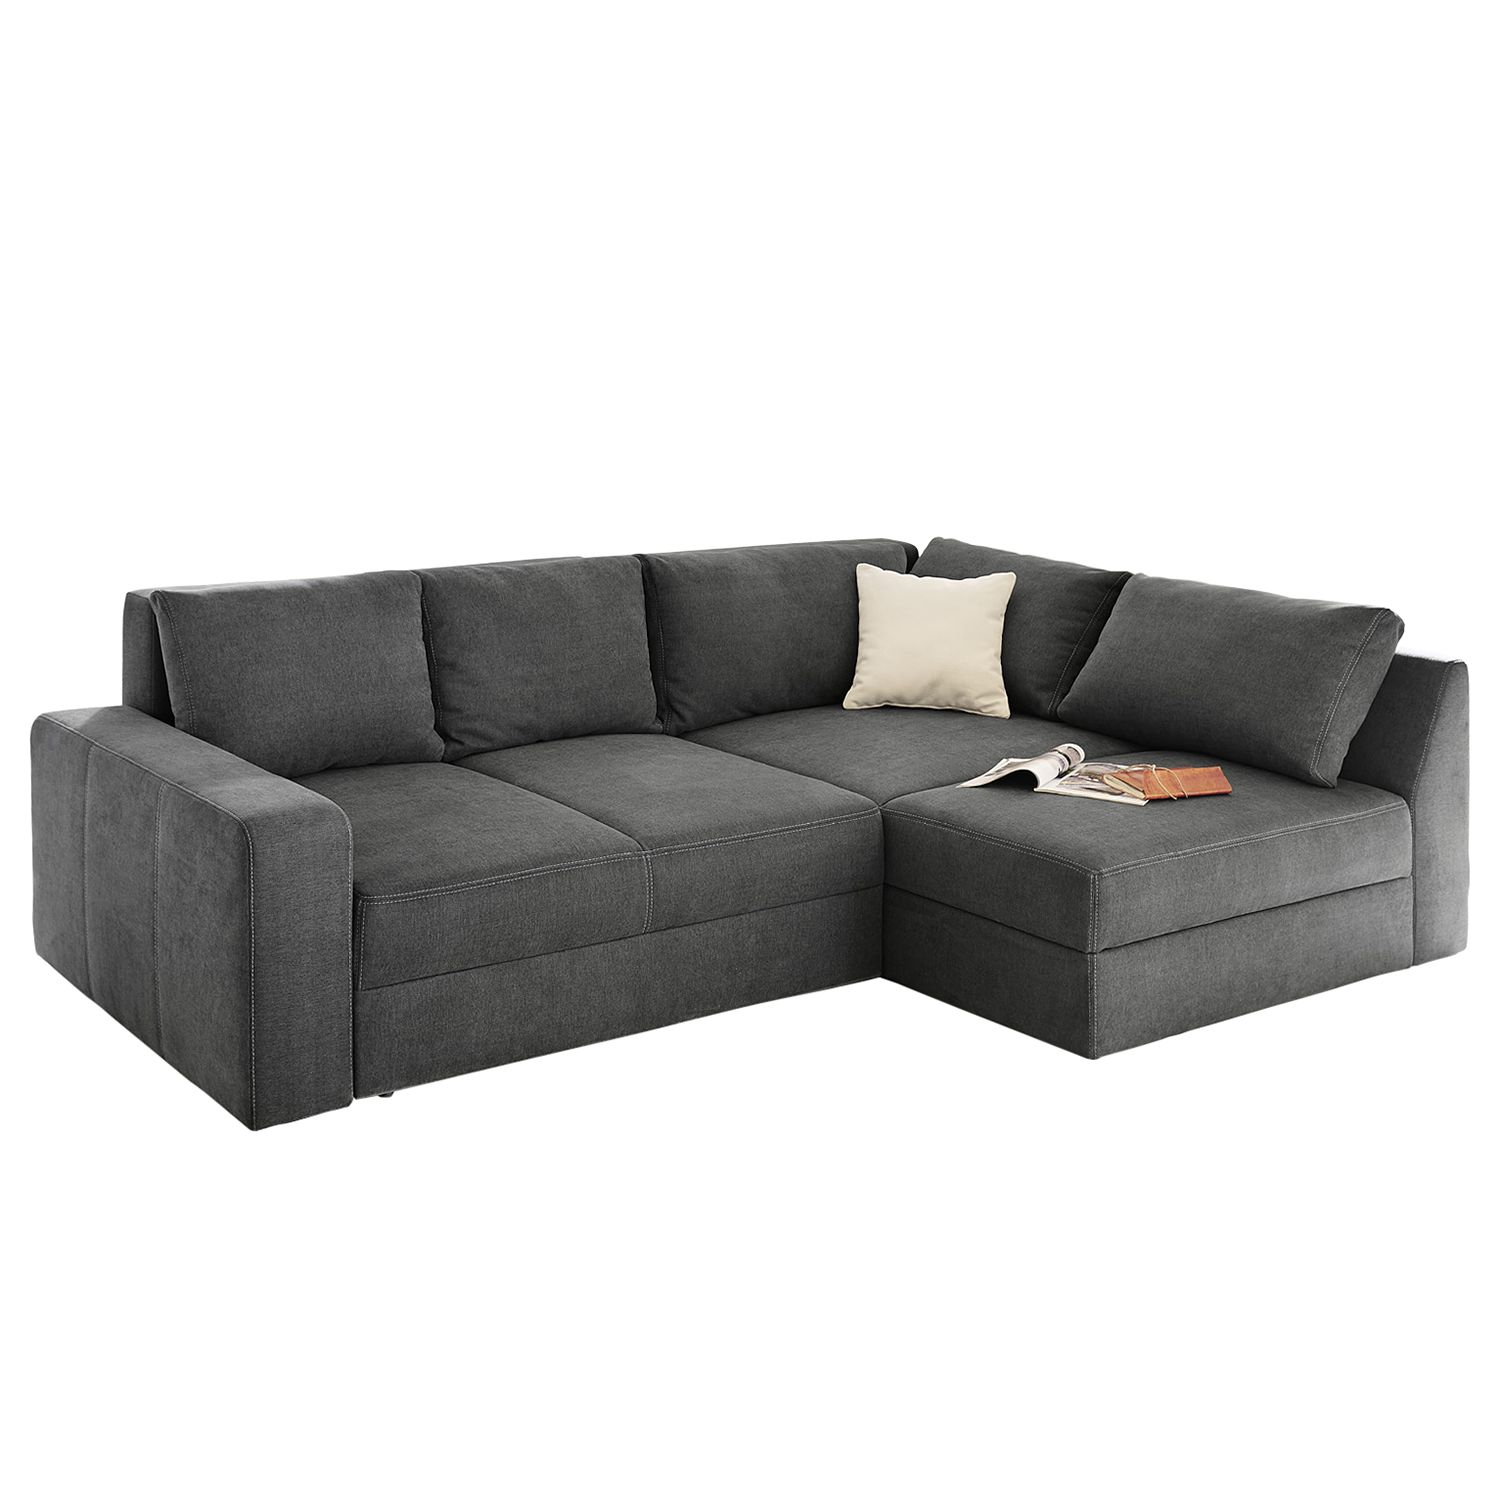 schlafsofa ecksofa top home with schlafsofa ecksofa. Black Bedroom Furniture Sets. Home Design Ideas